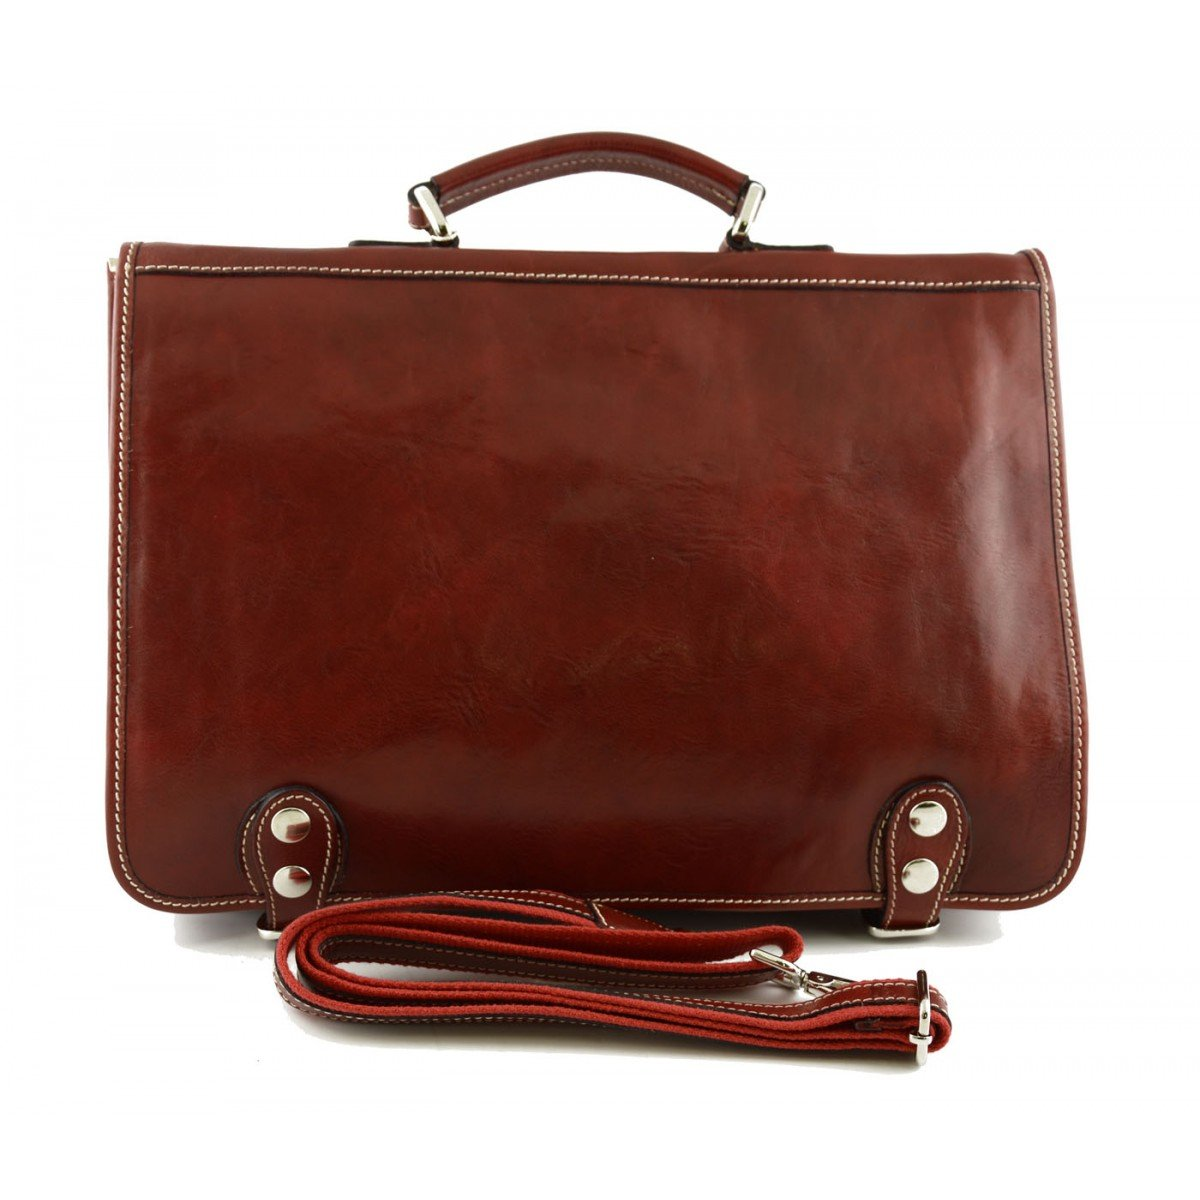 Made In Italy Business Briefcase In Genuine Leather With Inside Pockets Color Red - Business Bag B01NBIGPAM